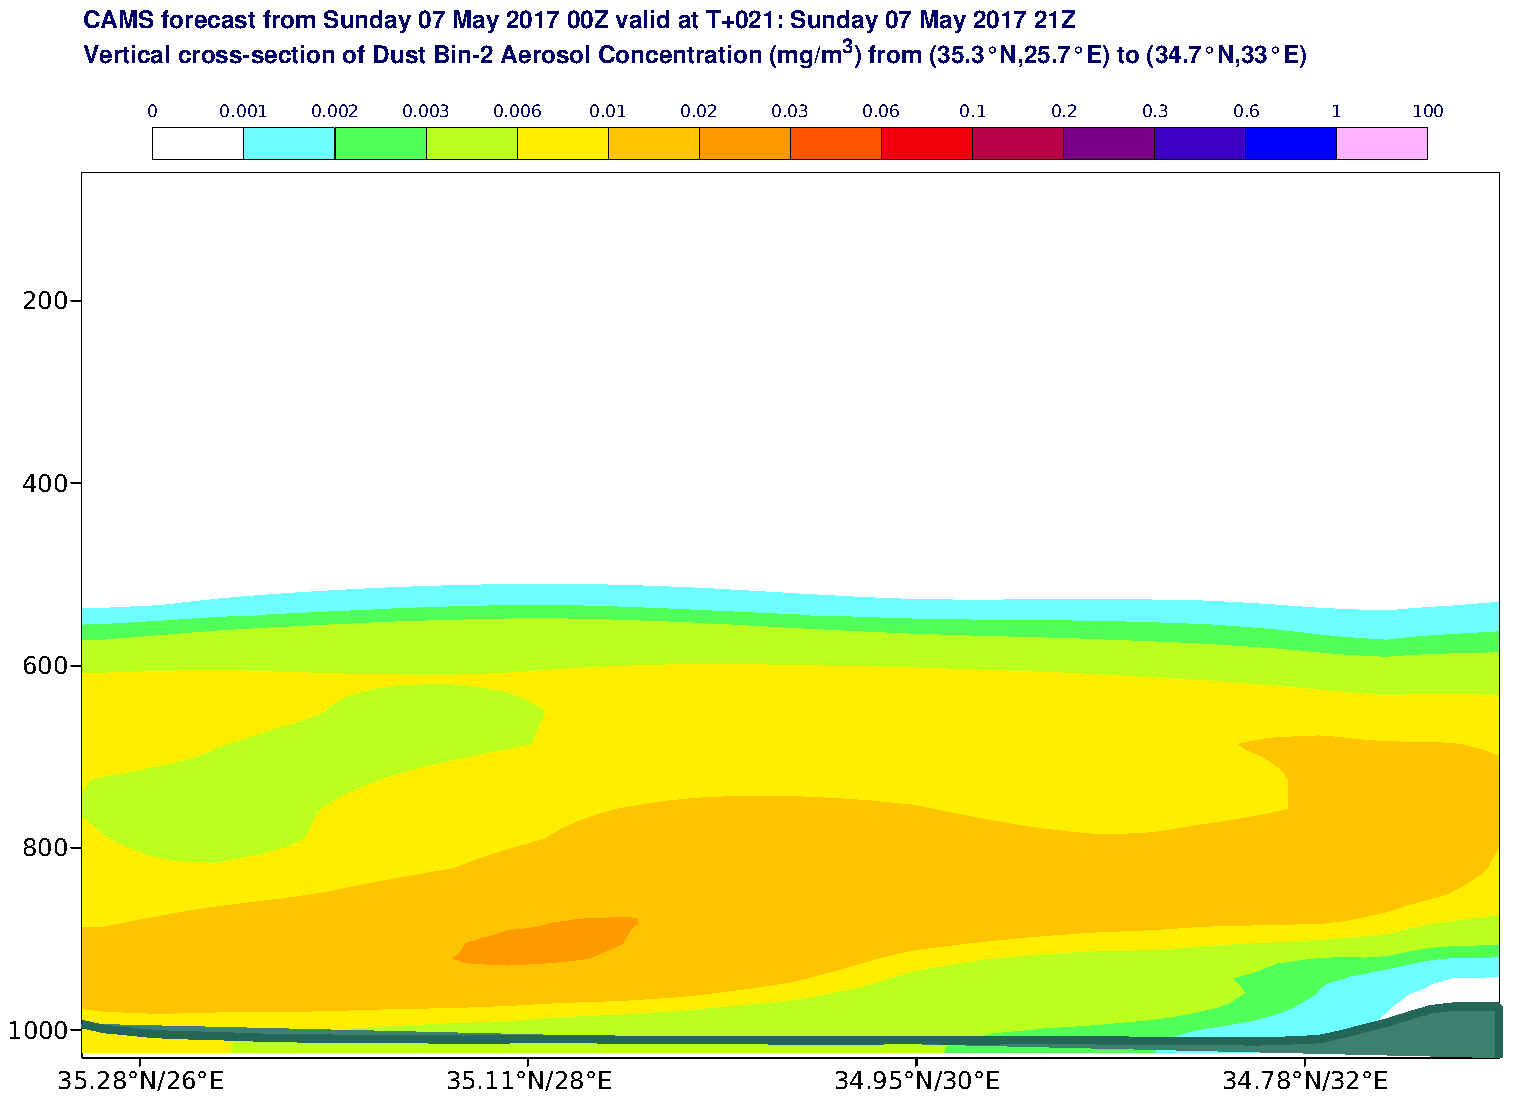 Vertical cross-section of Dust Bin-2 Aerosol Concentration (mg/m3) valid at T21 - 2017-05-07 21:00